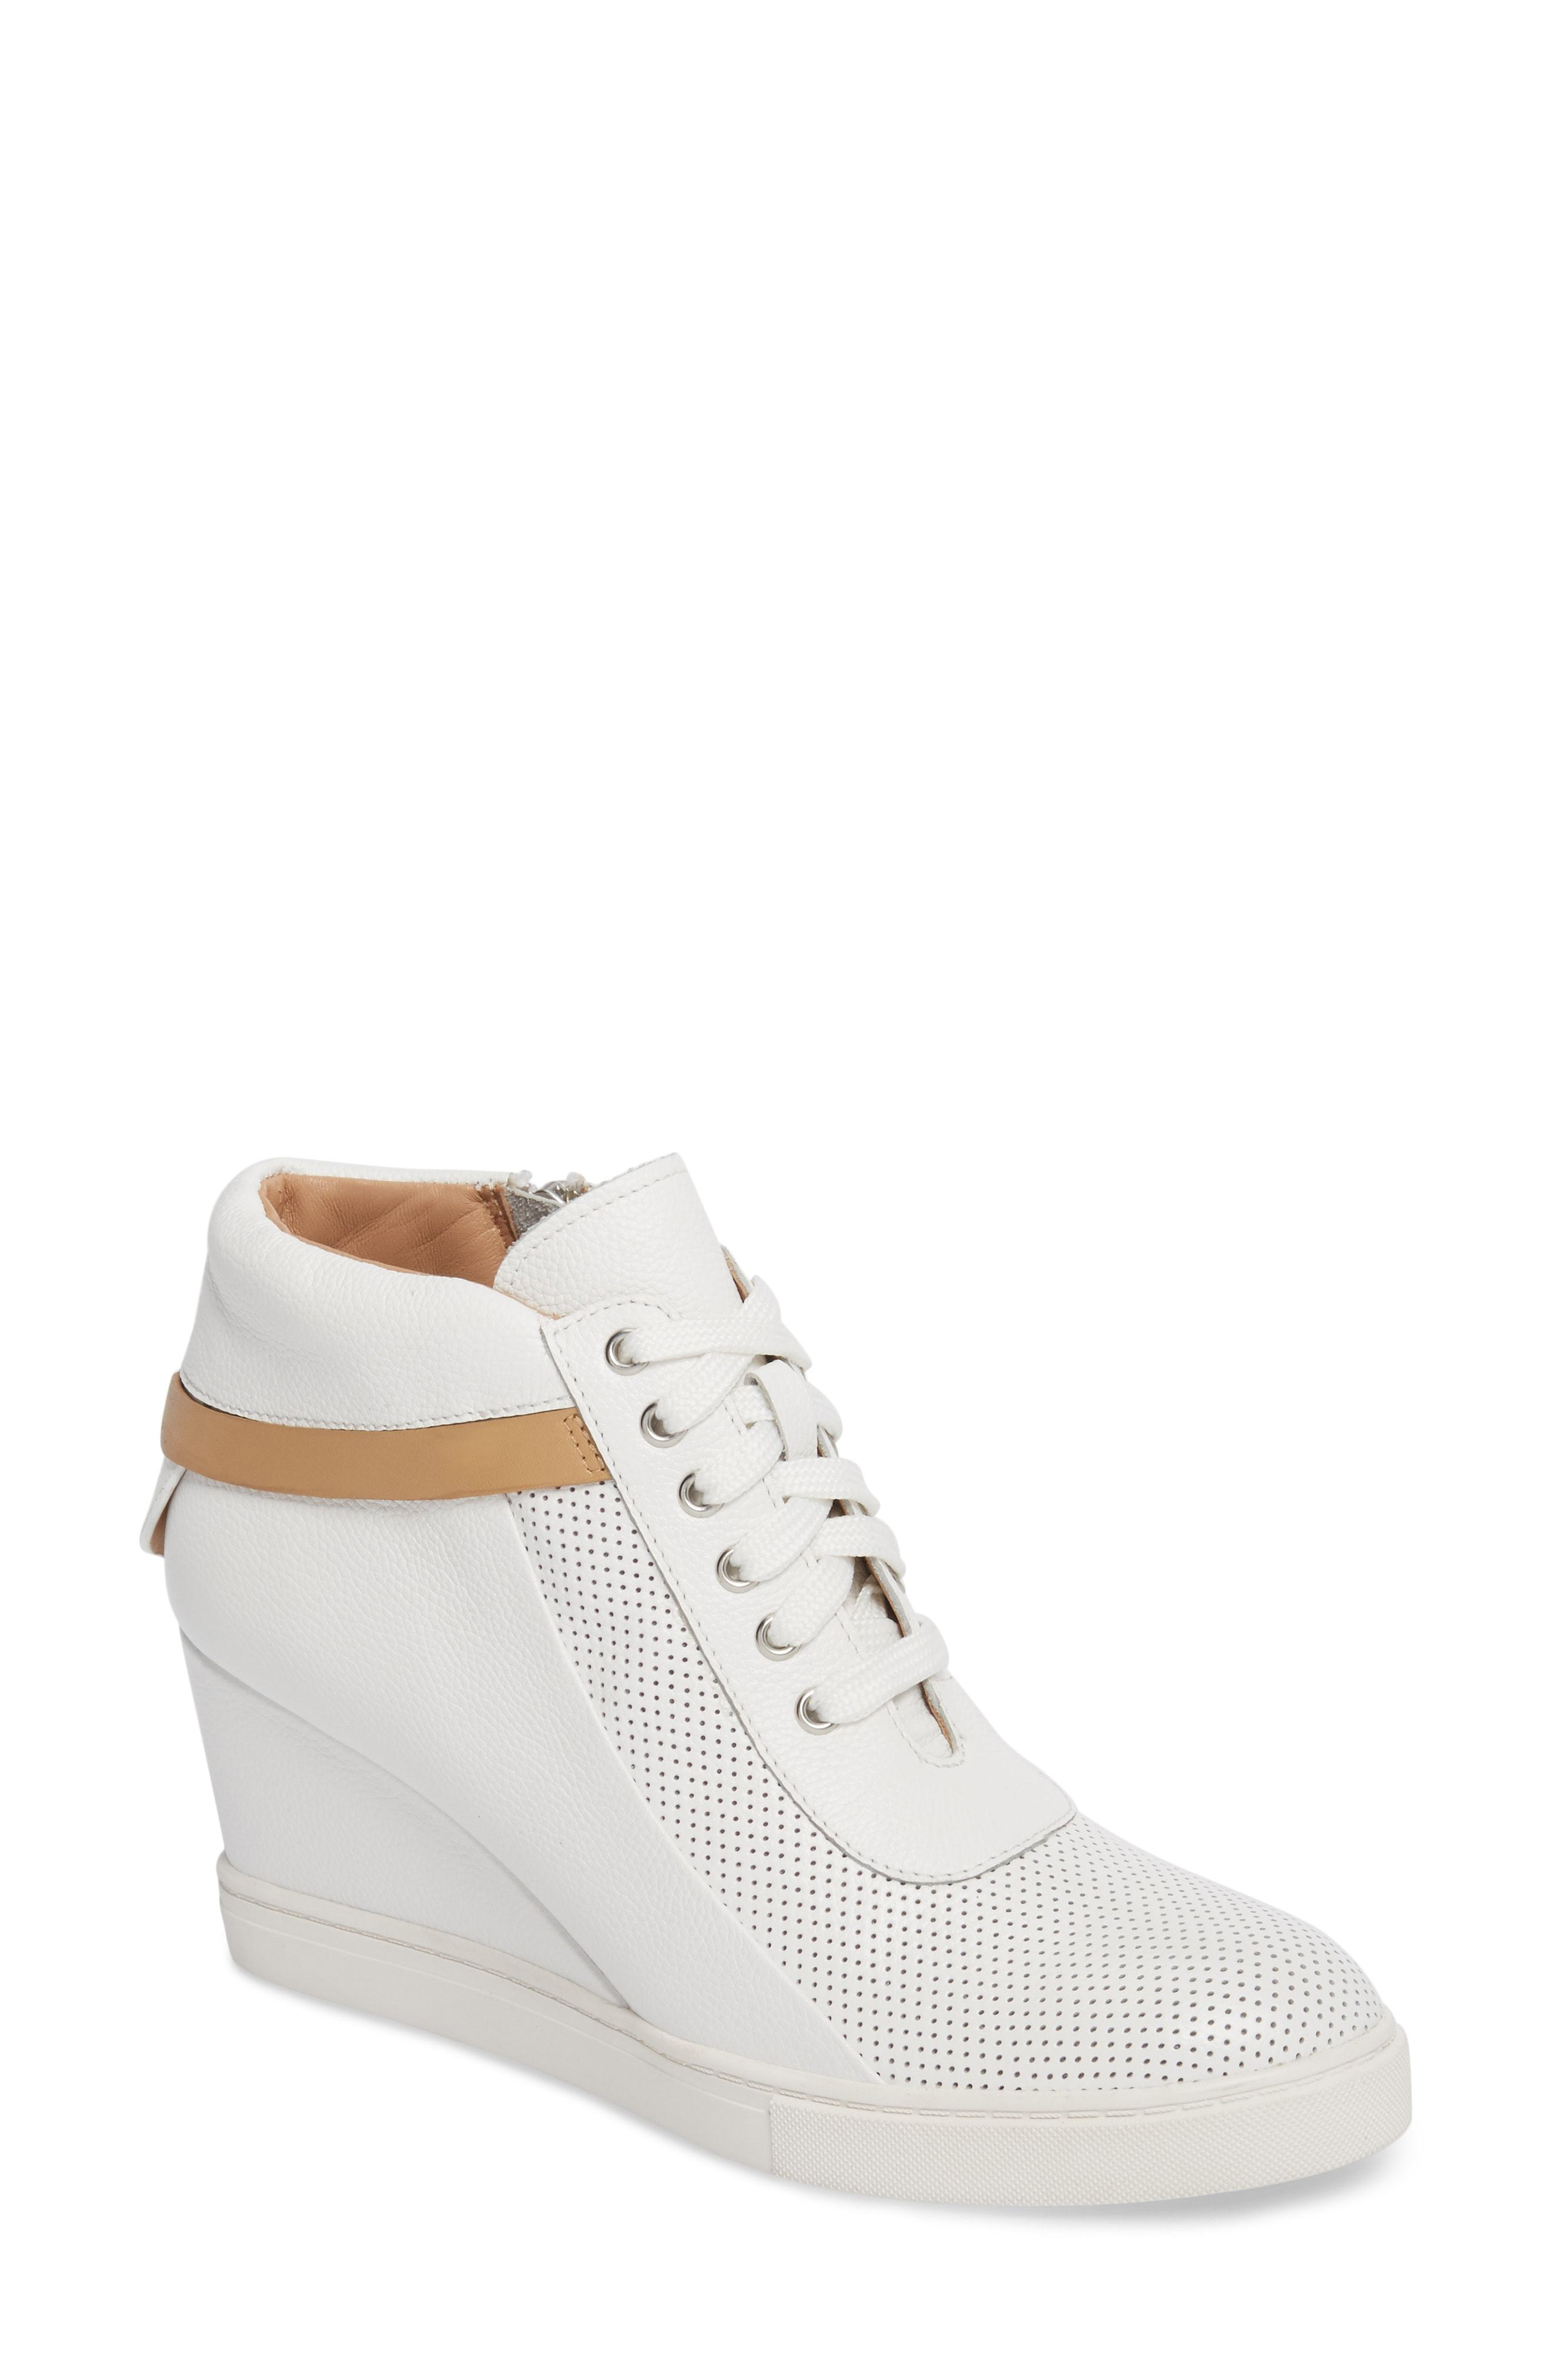 27c3af3d81e4 Freja Wedge Sneaker. White Leather Wedge Sneakers by Linea Paolo